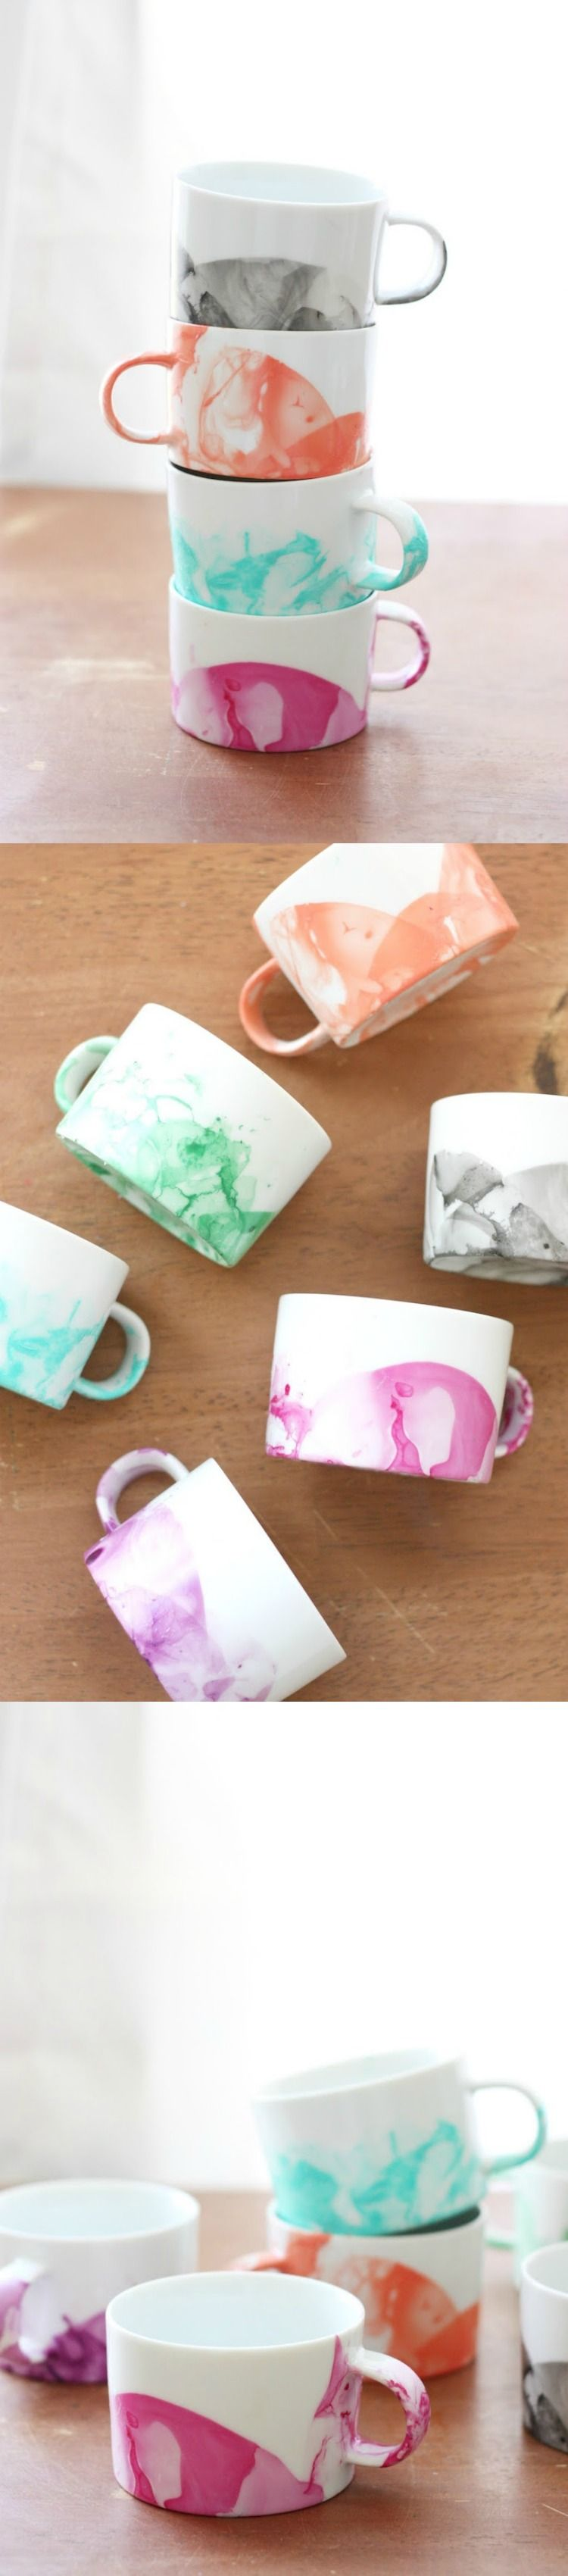 DIY Marbled Mugs With Nail Polish